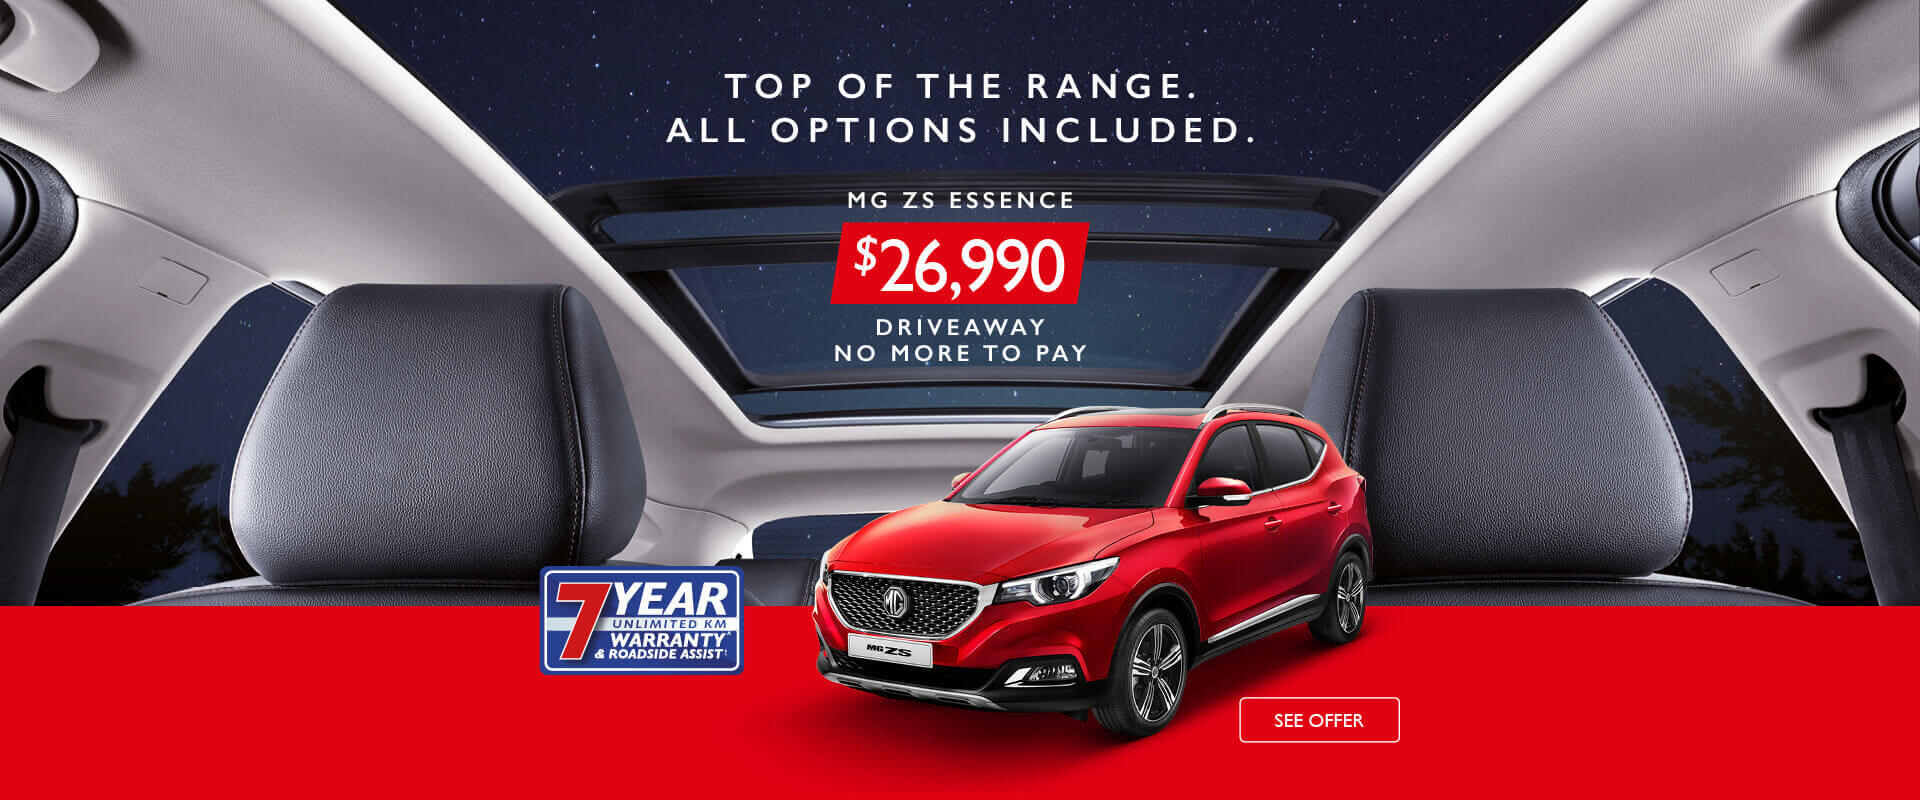 MG ZS Essence Offer